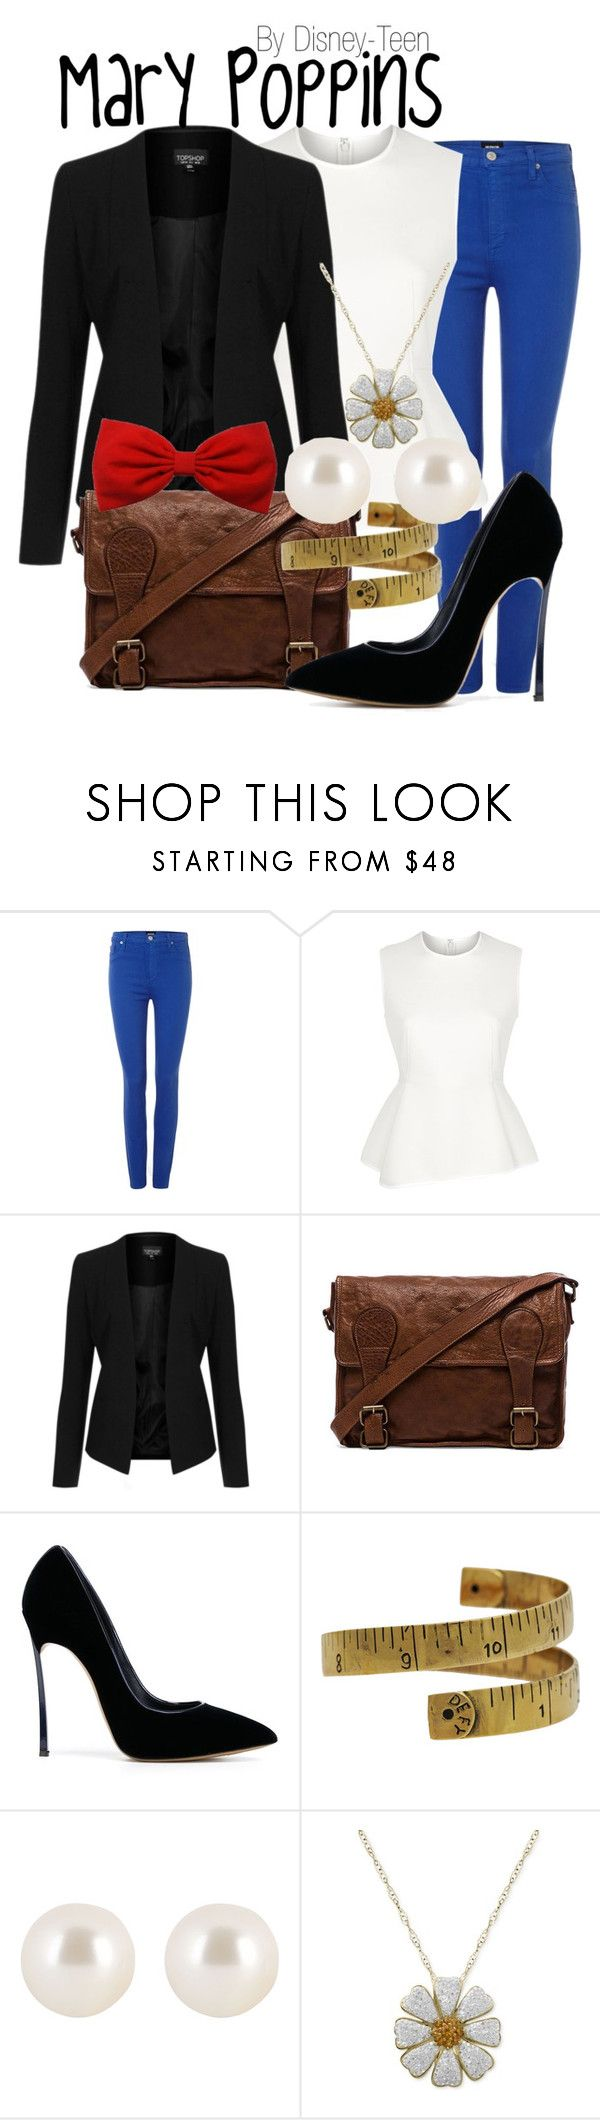 """Mary Poppins"" by disney-teen ❤ liked on Polyvore featuring Hudson Jeans, Alexander Wang, Topshop, VIPARO, Casadei, Monserat De Lucca, Henri Bendel, disney, disneybound and marypoppins"